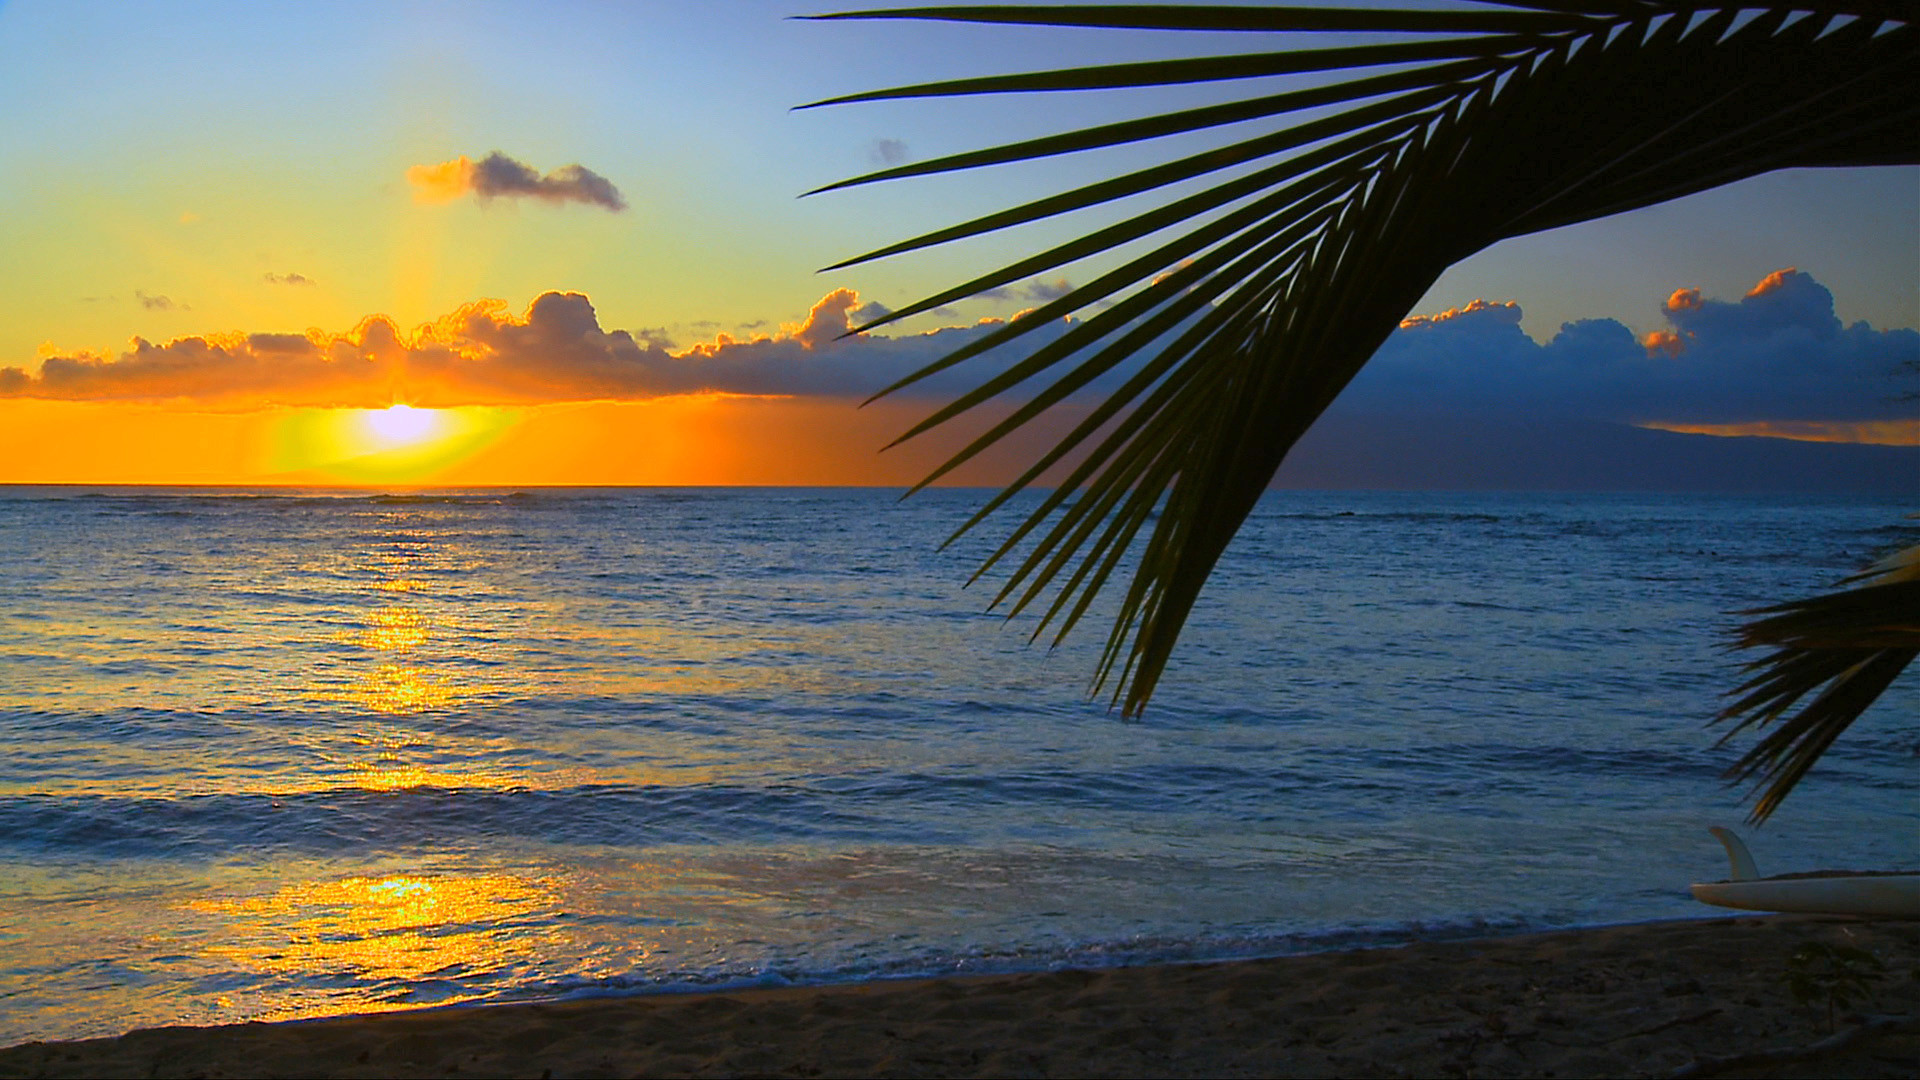 Res: 1920x1080, SEE The Most Beautiful Hawaii Beaches HD Blu Ray Video DVD The 1